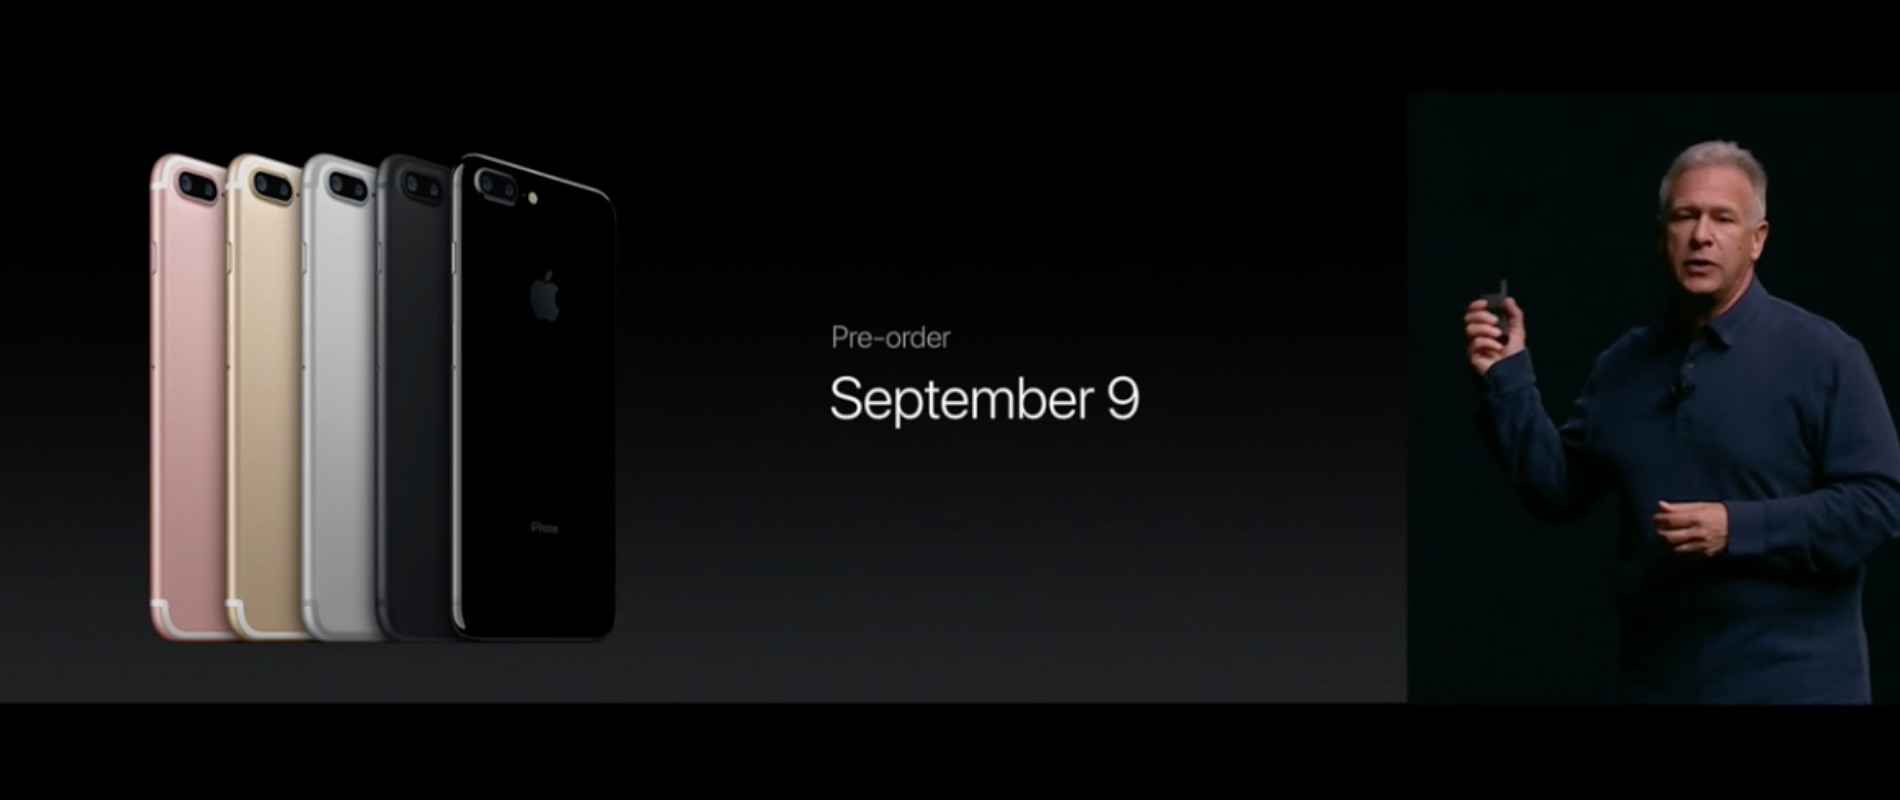 iphone7-plus-special-events-2016-sep-41